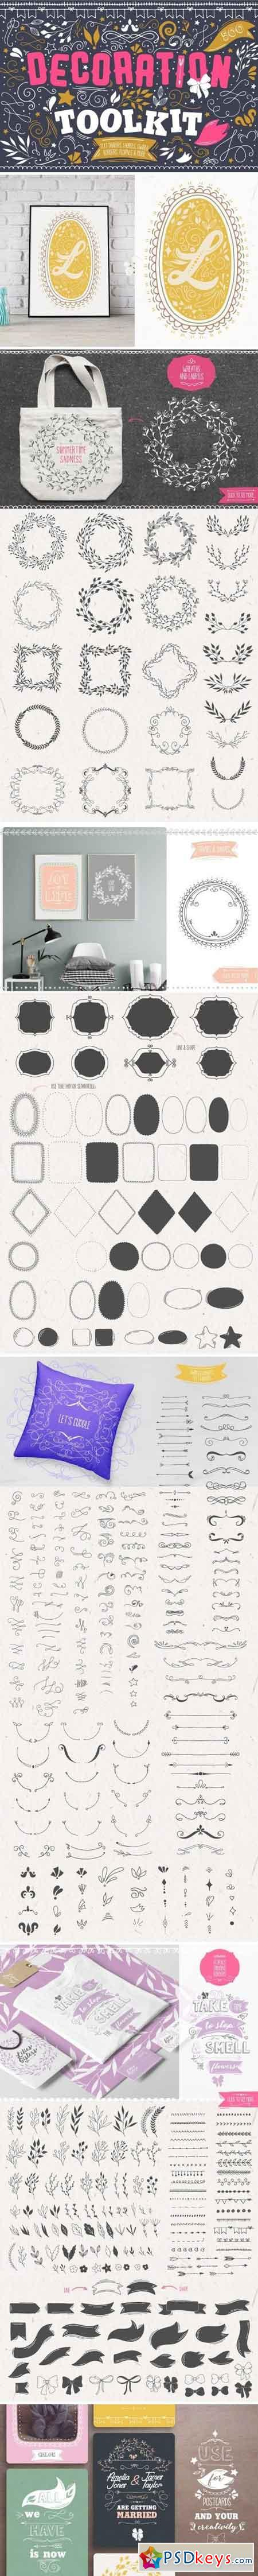 Decoration Toolkit 1568564